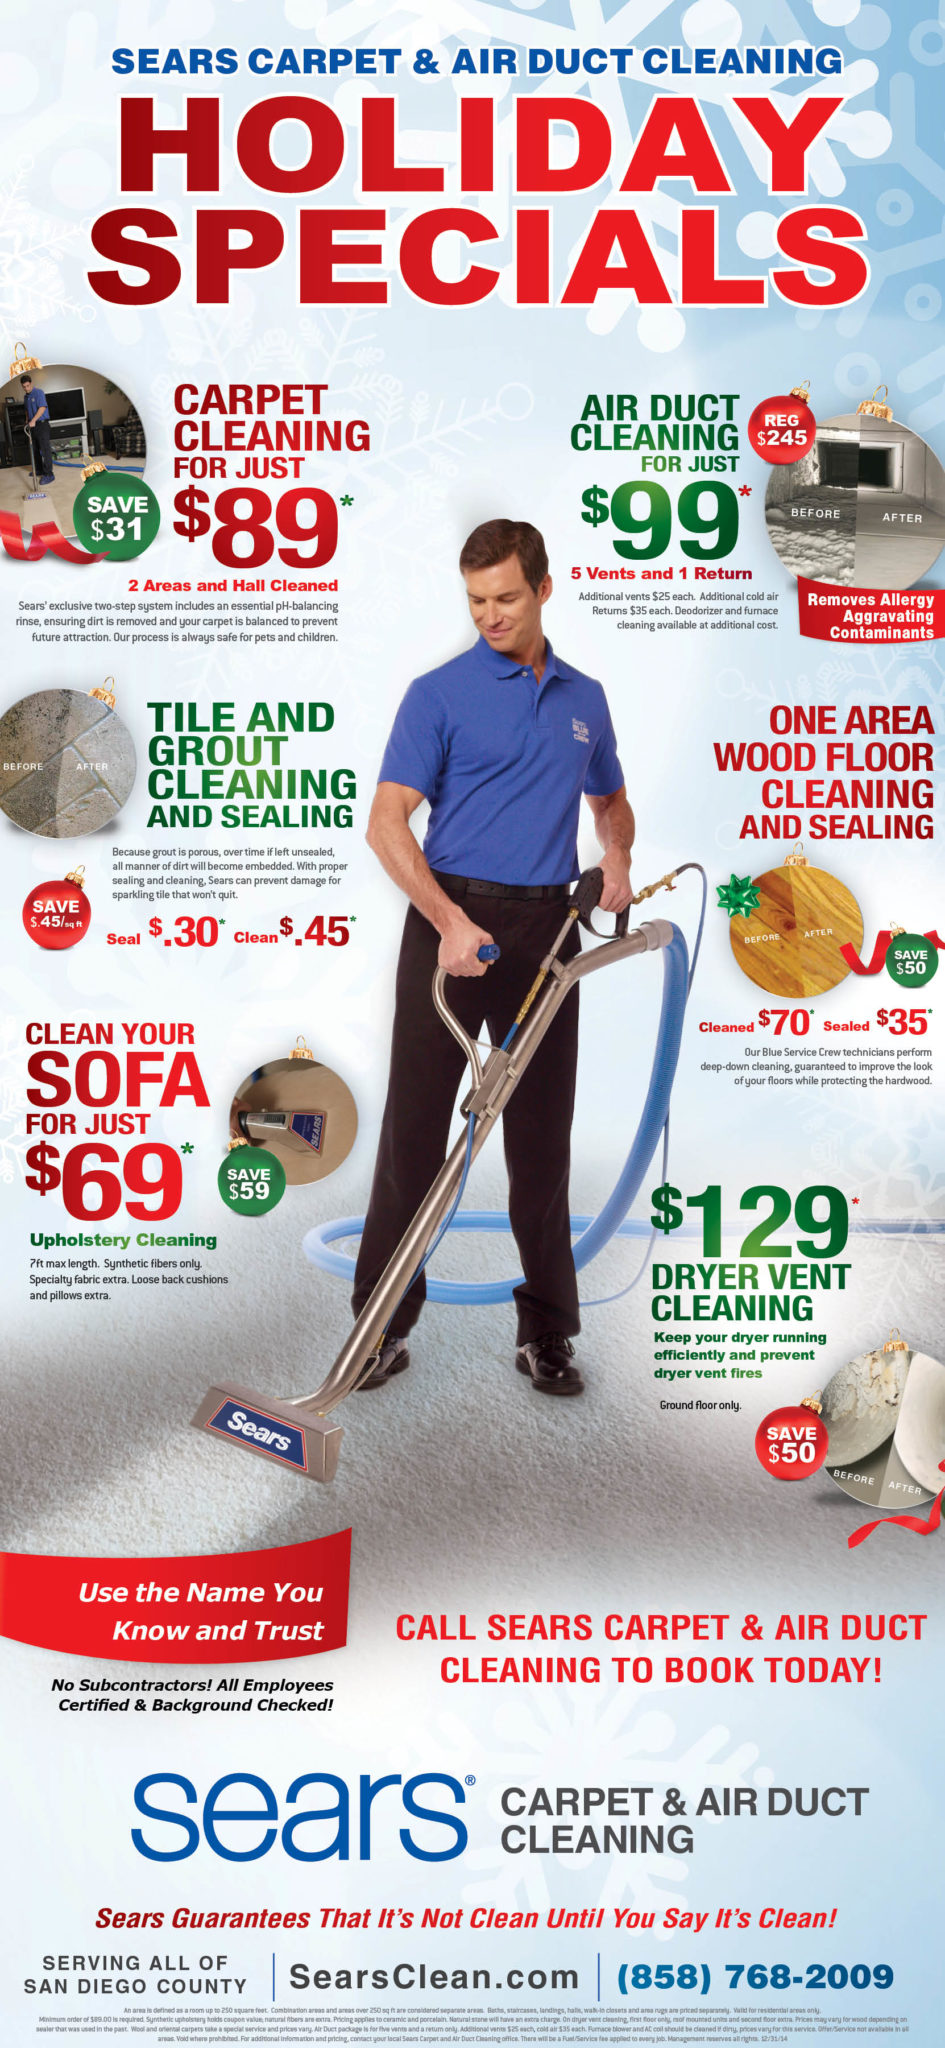 sears carpet cleaning ut ad innovision marketing group the sears carpet cleaning ut ad innovision marketing group the anti agencyreg